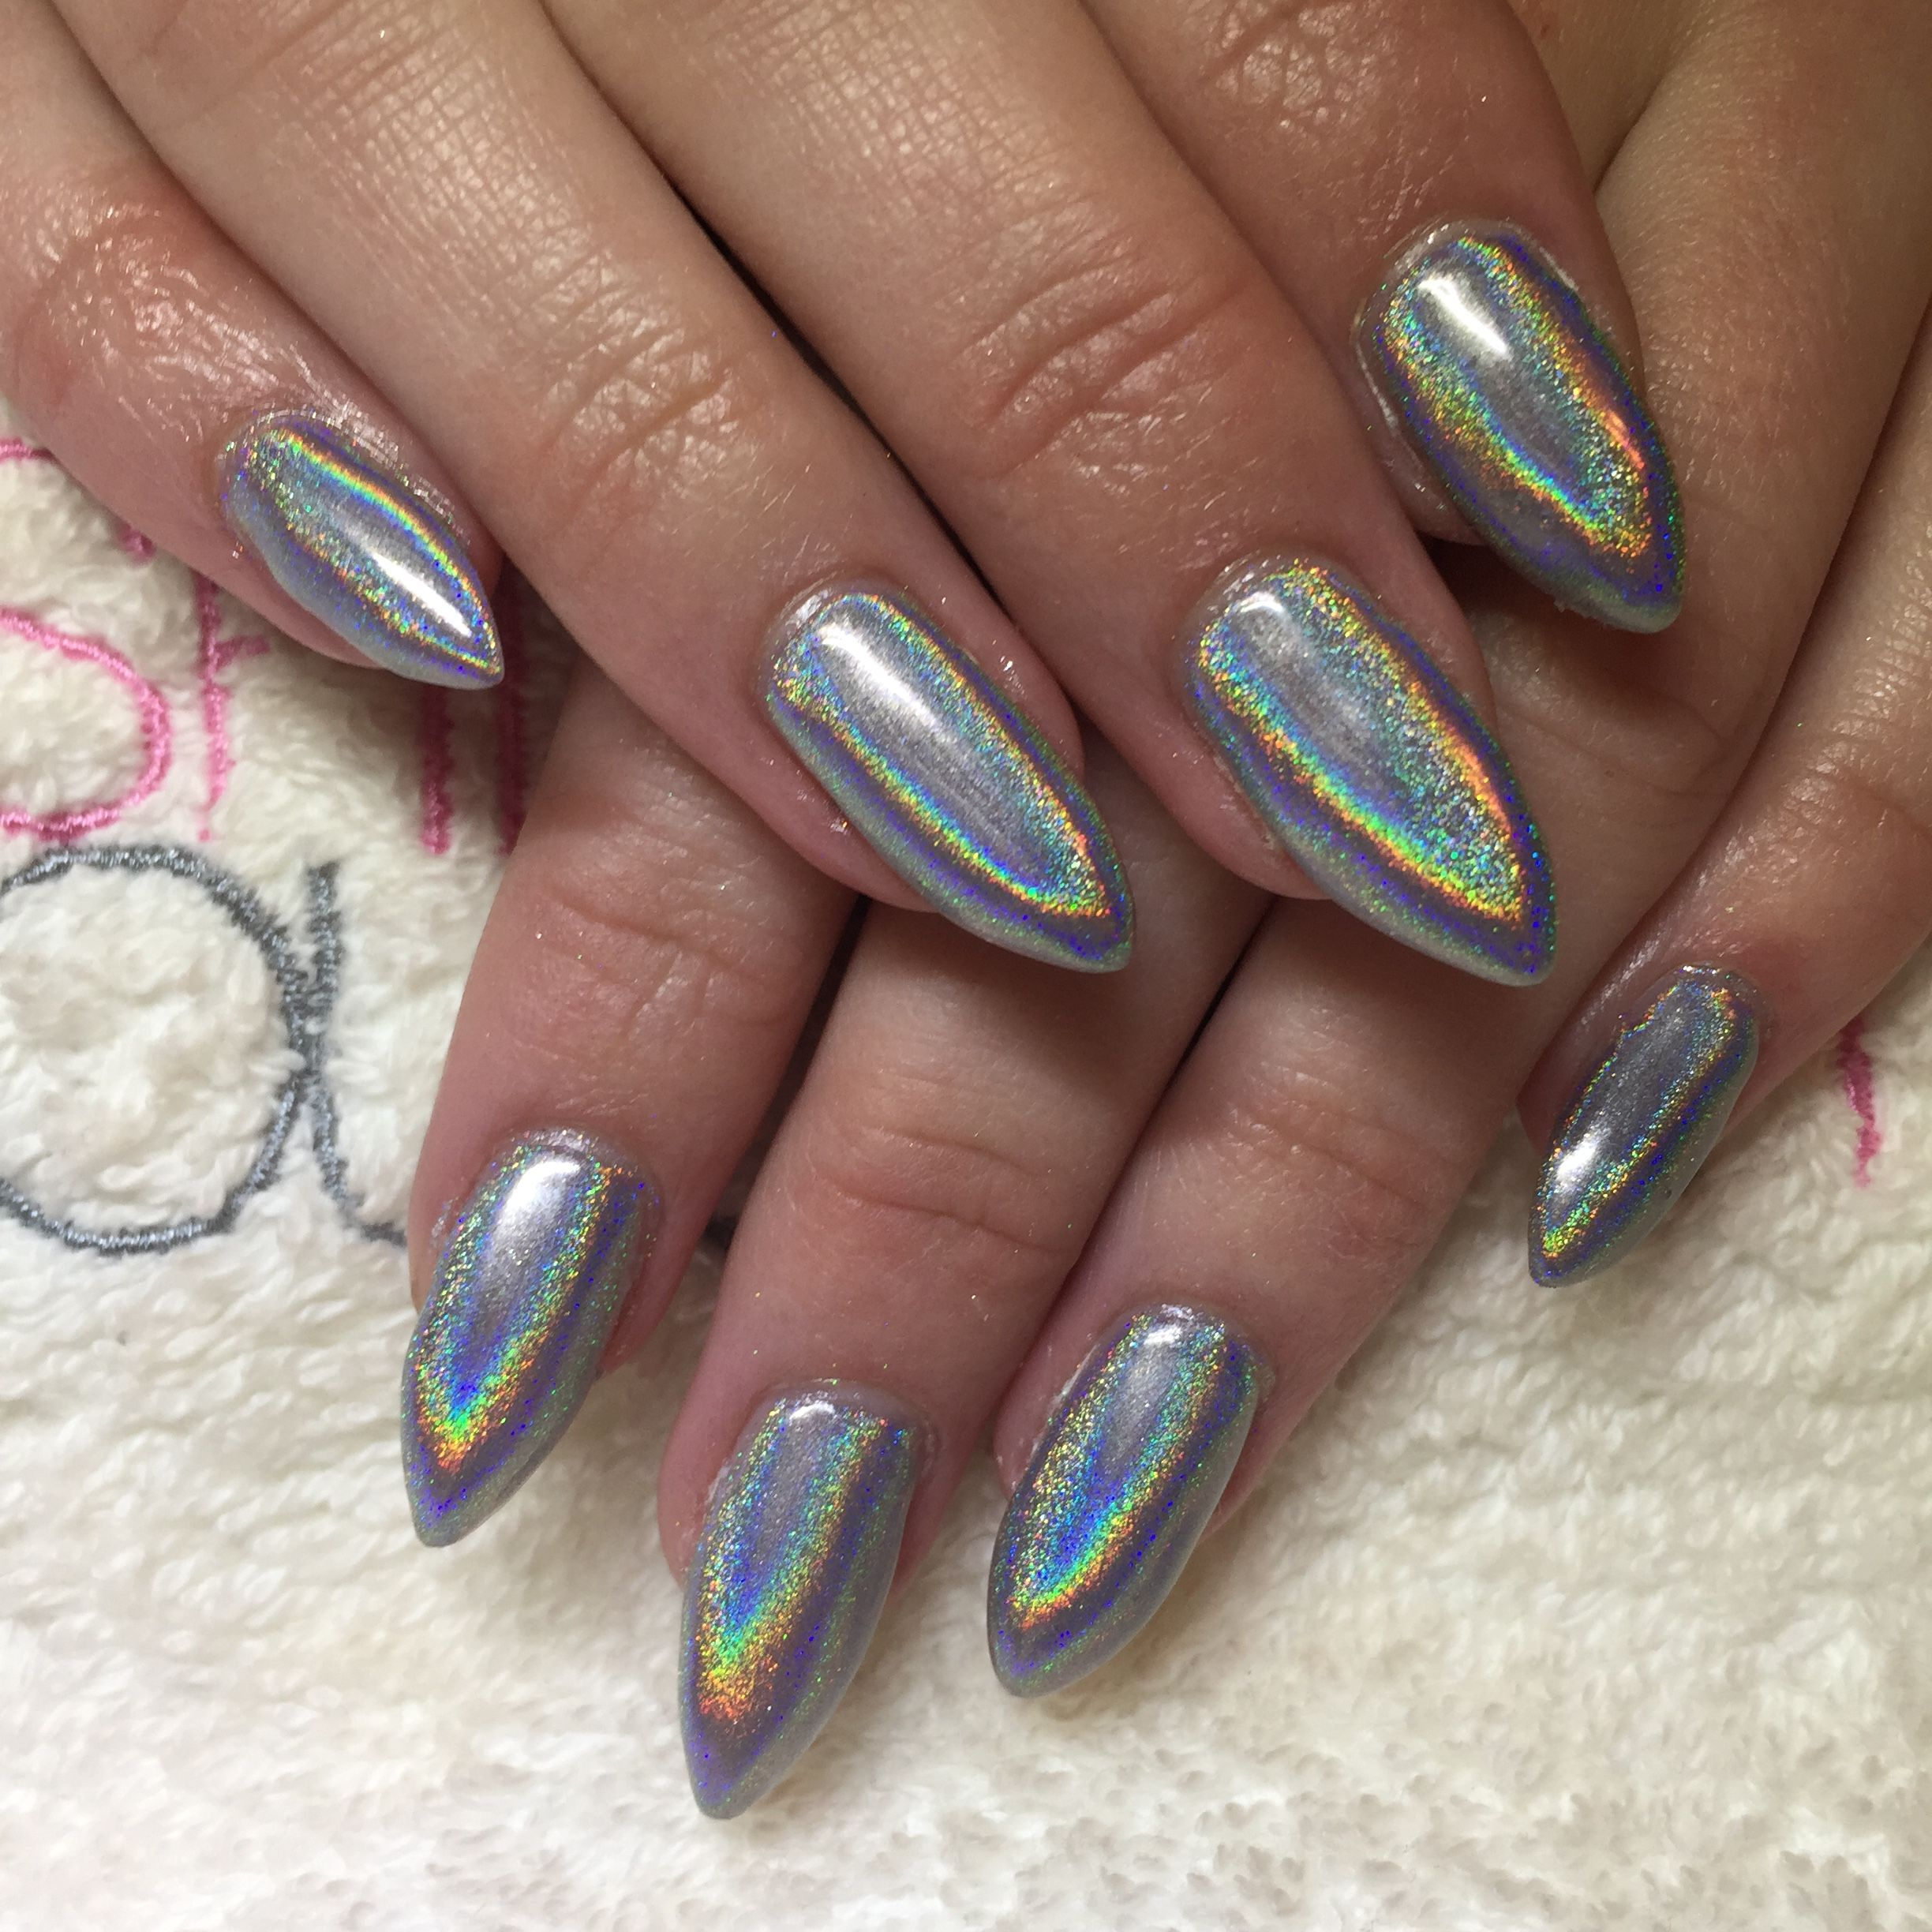 Chrome Nail Powder Cnd